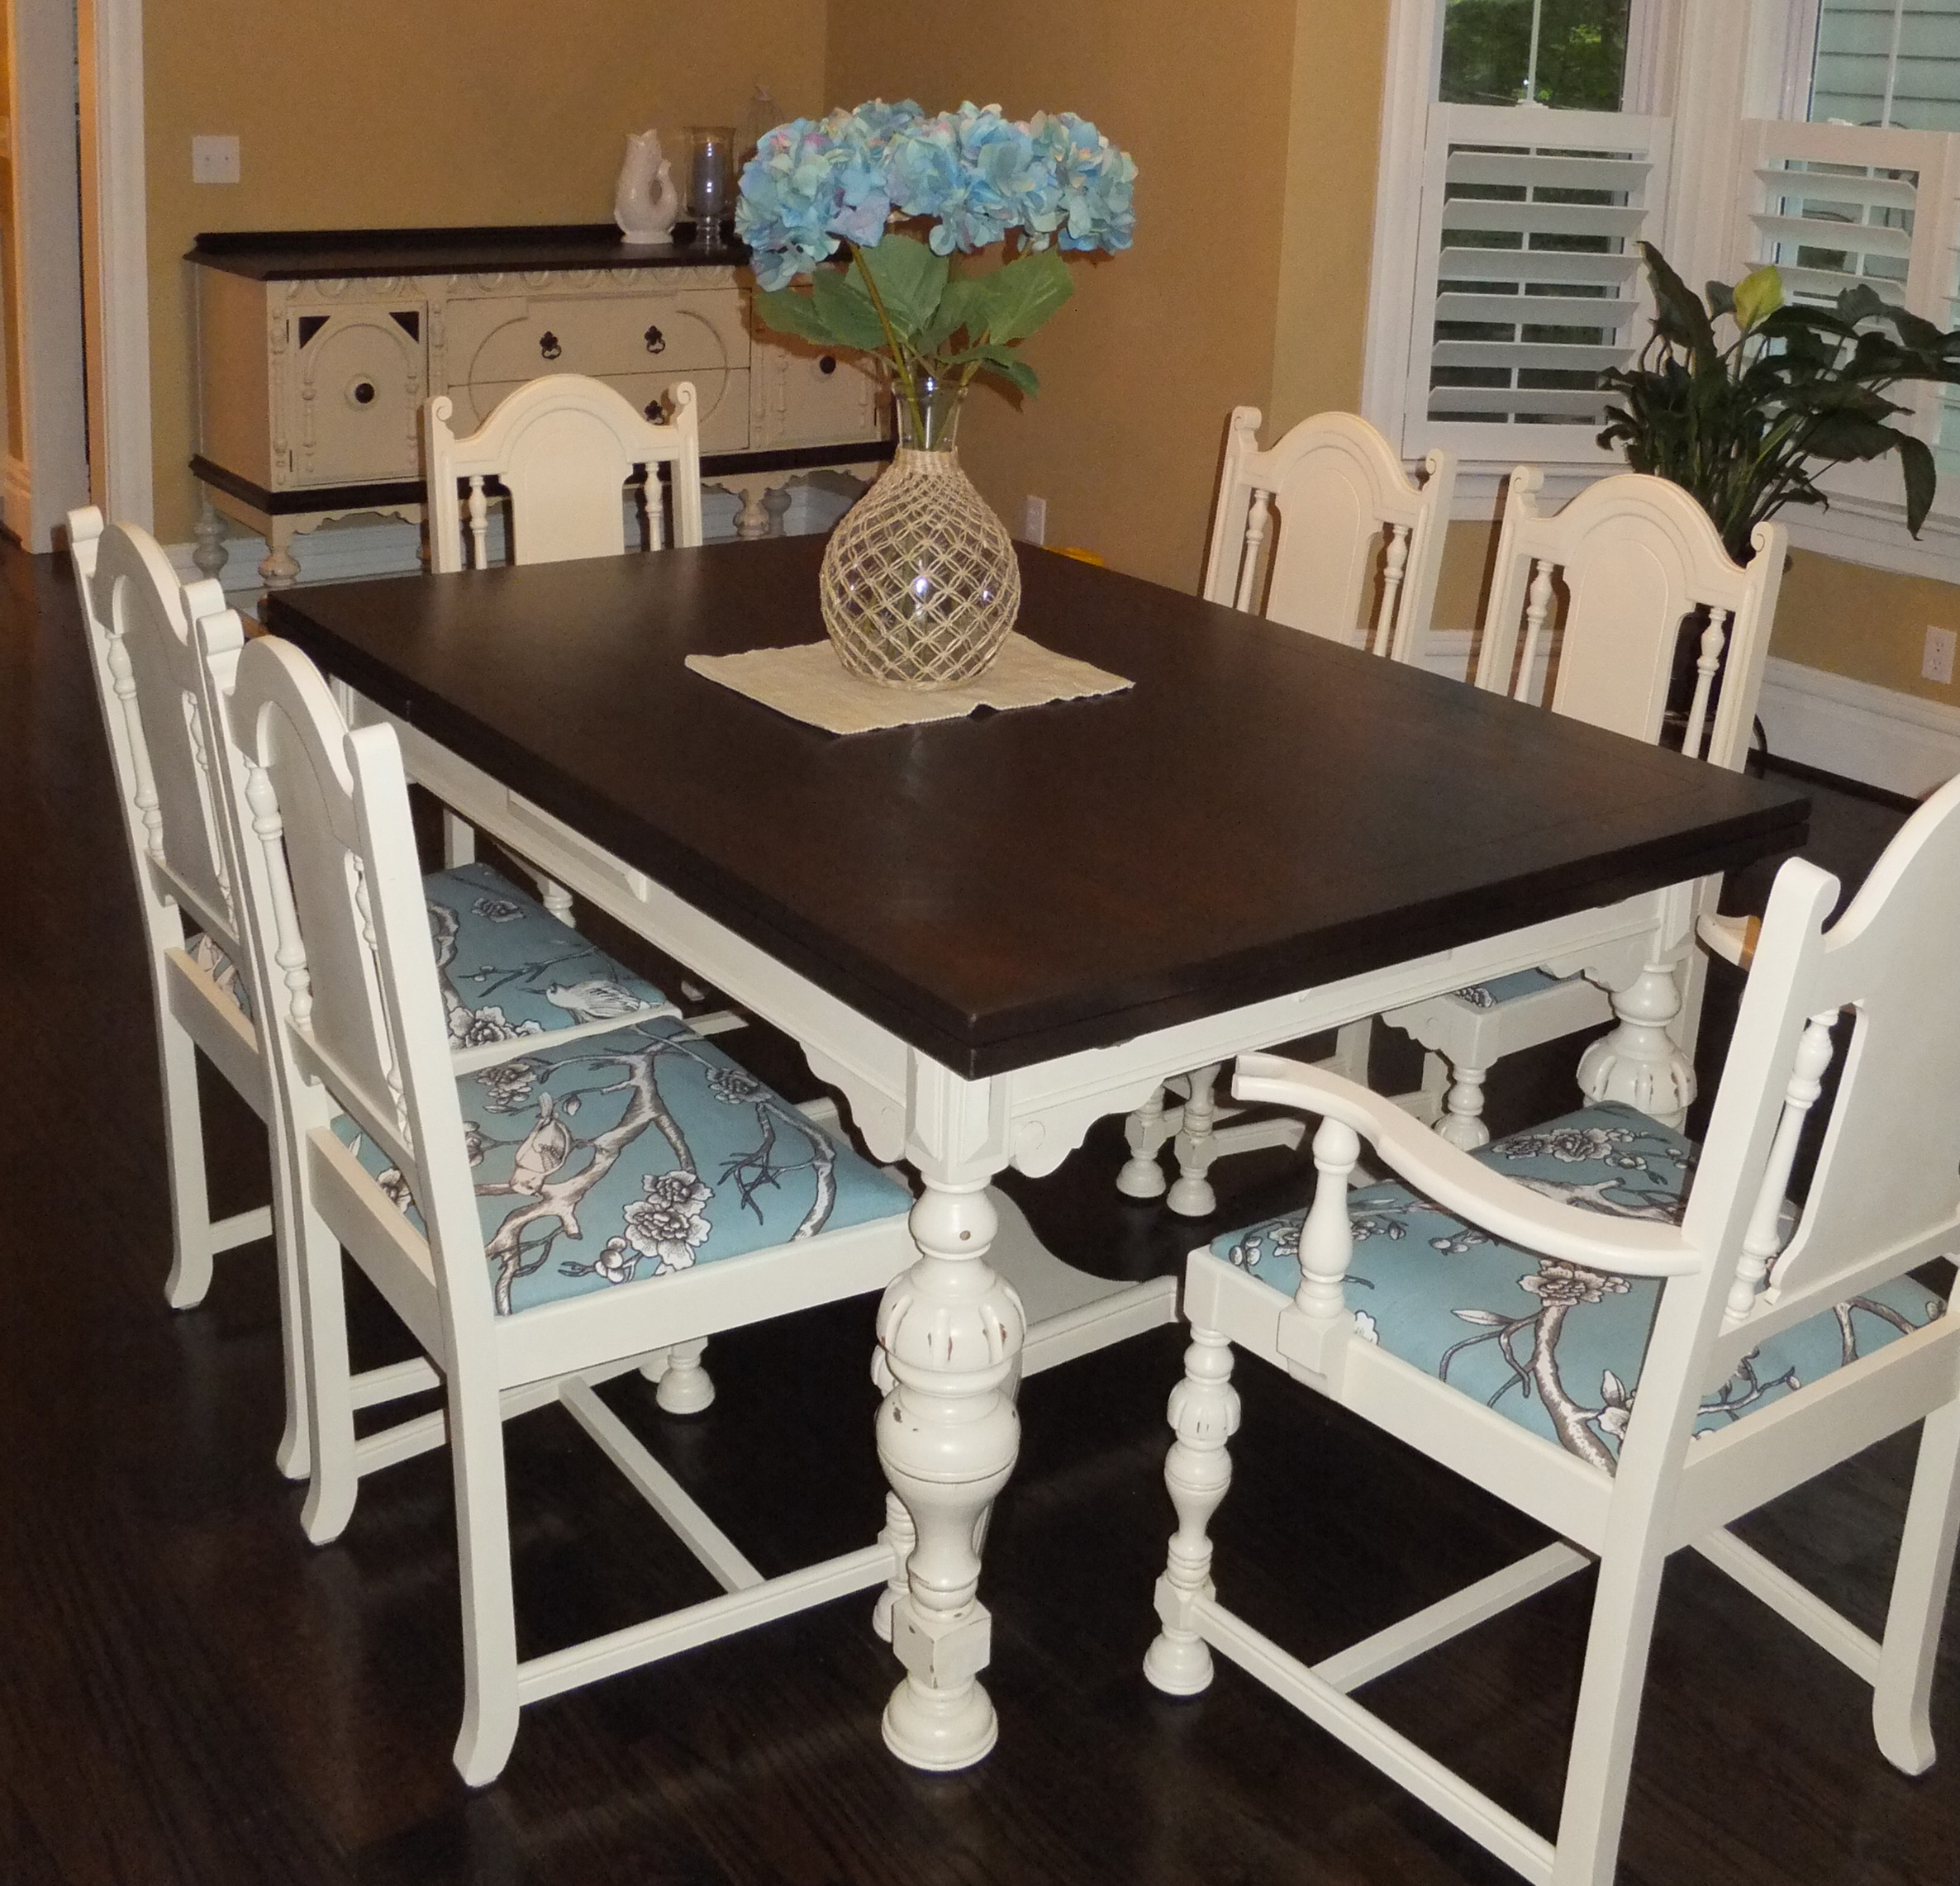 Refinished Dining Room Tables: Dining Room Table And Chair Set In Java Gel Stain And